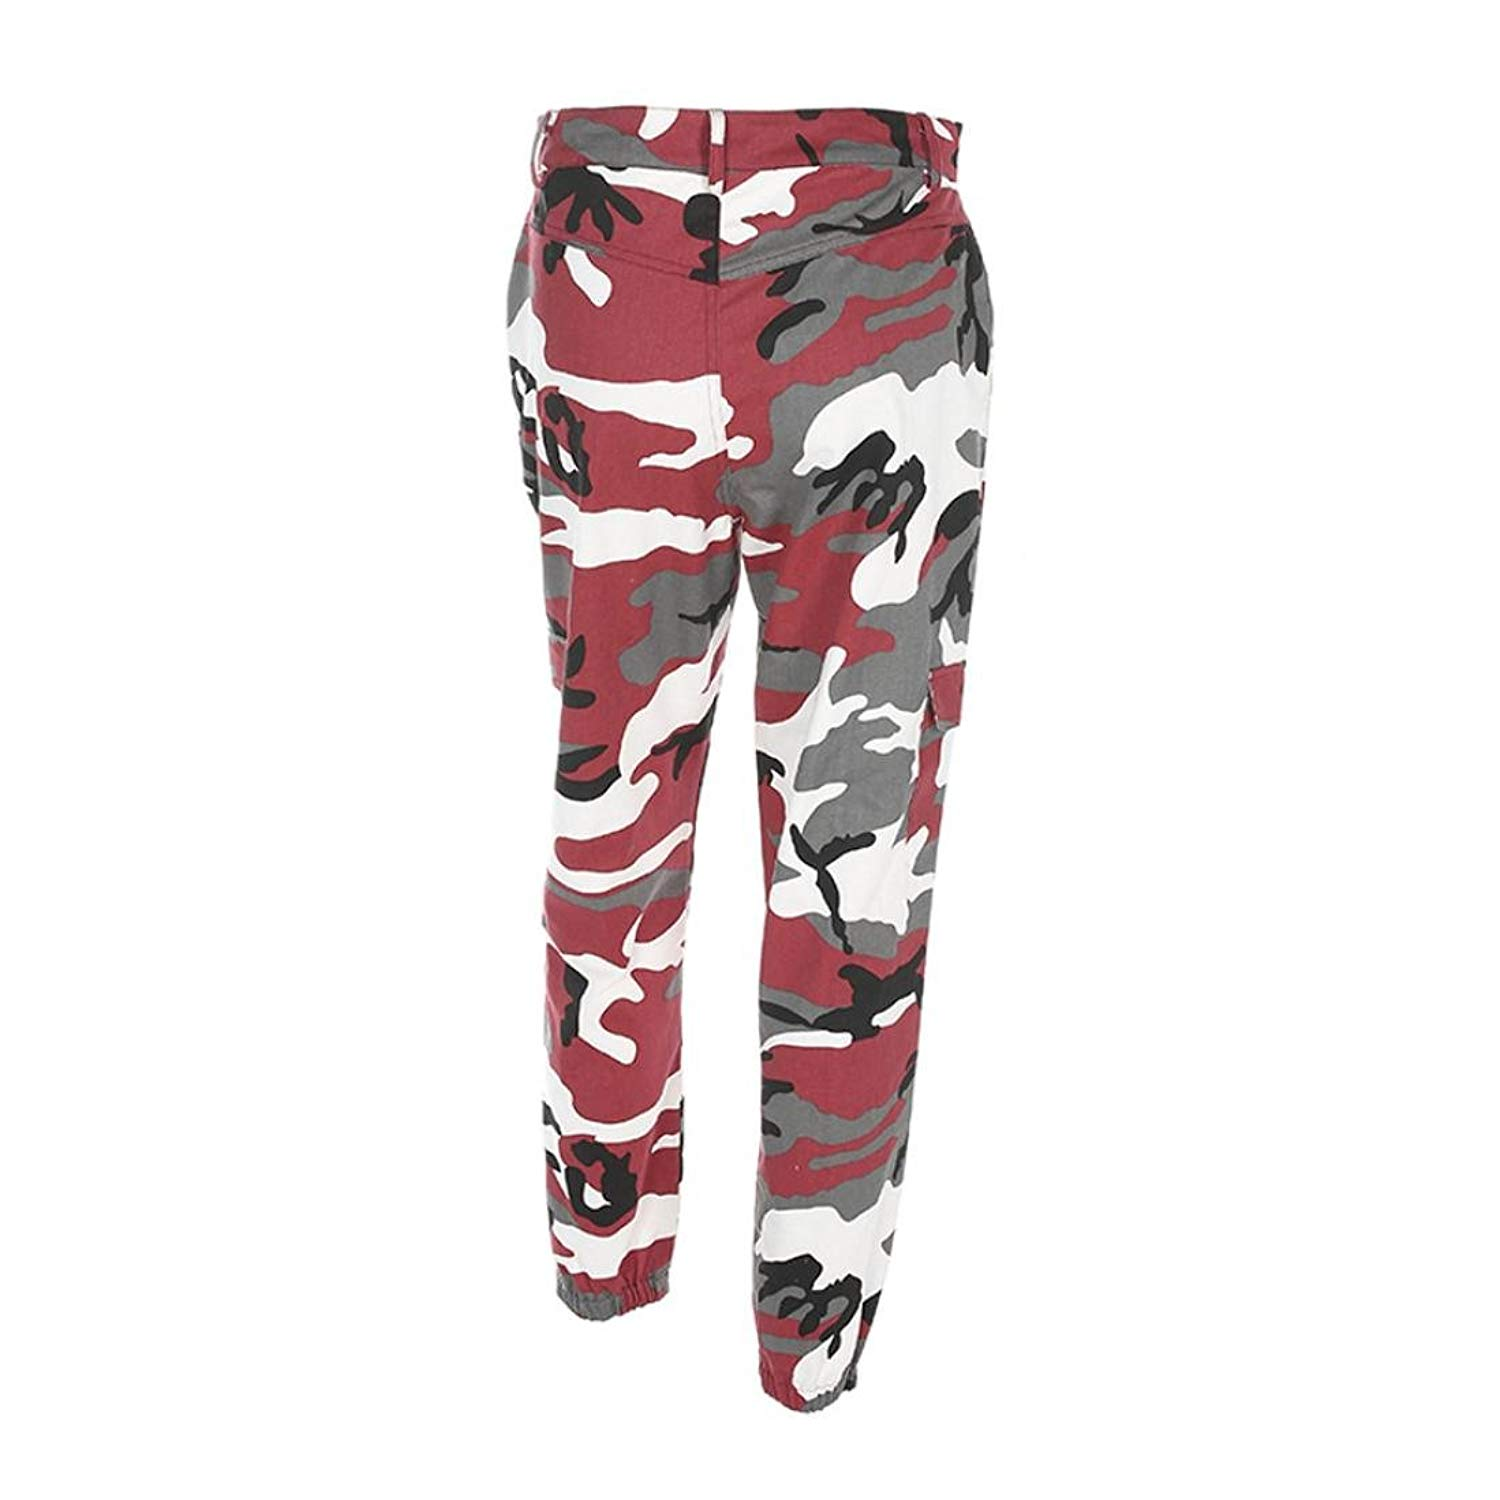 d5c0bed06a5 Get Quotations · Greatgiftlist Women Camouflage Trousers Loose Jeans Sports  Camo Cargo Pants Army Cargo Fatigues Denim Pants (